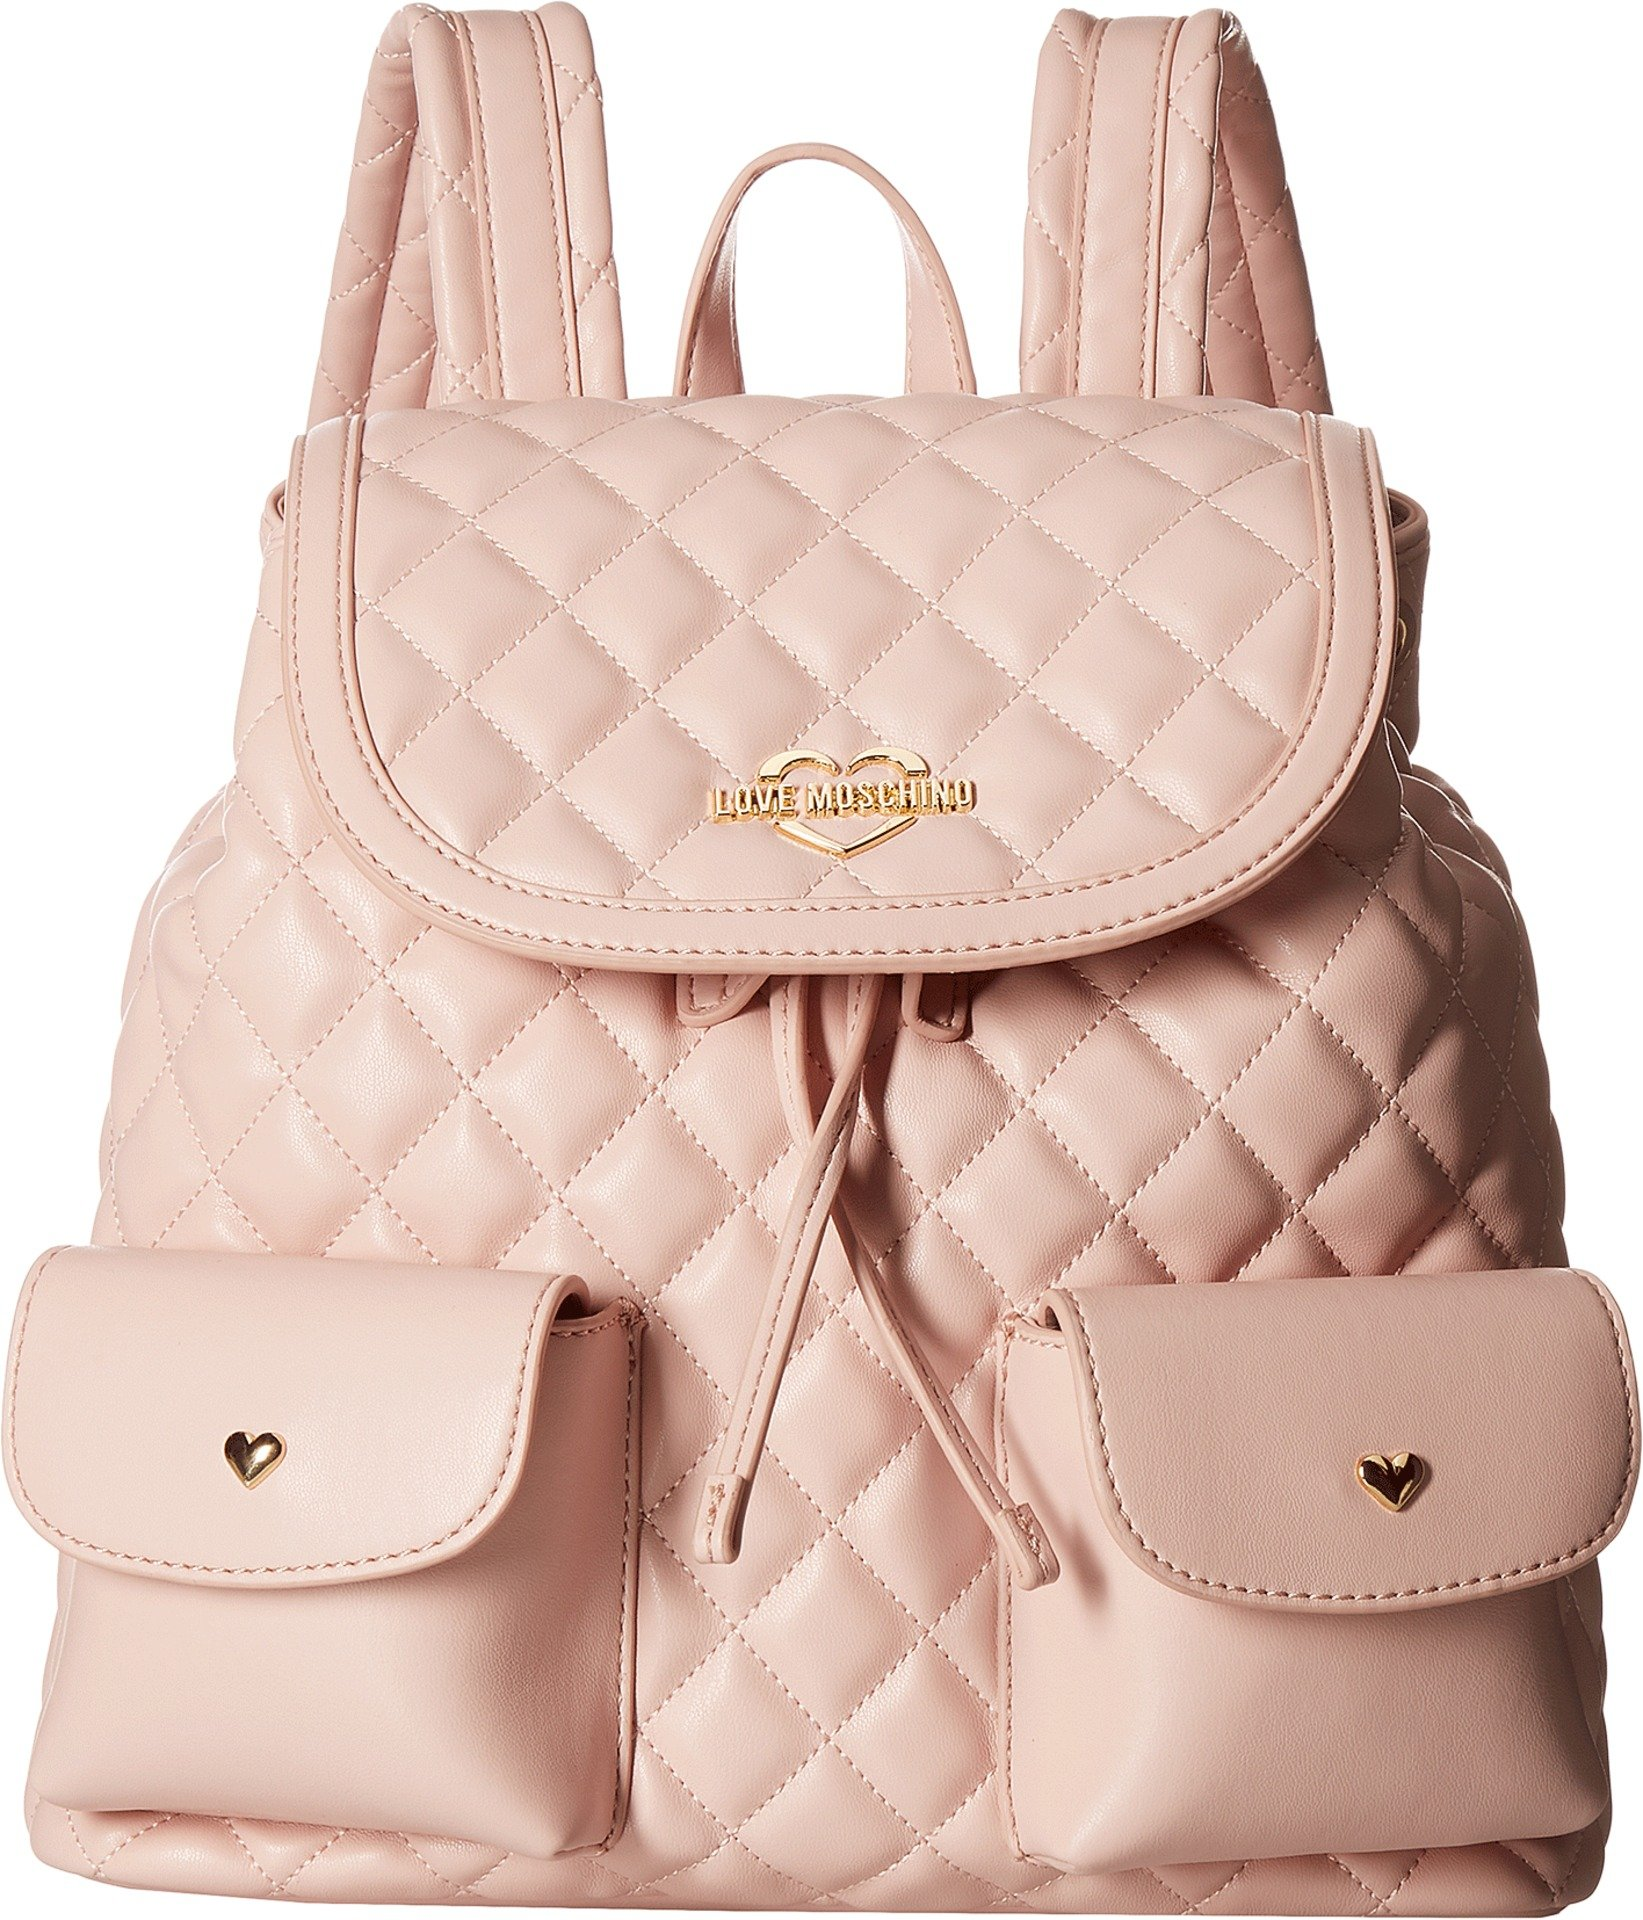 LOVE Moschino Women's Quilted Backpack Pink One Size